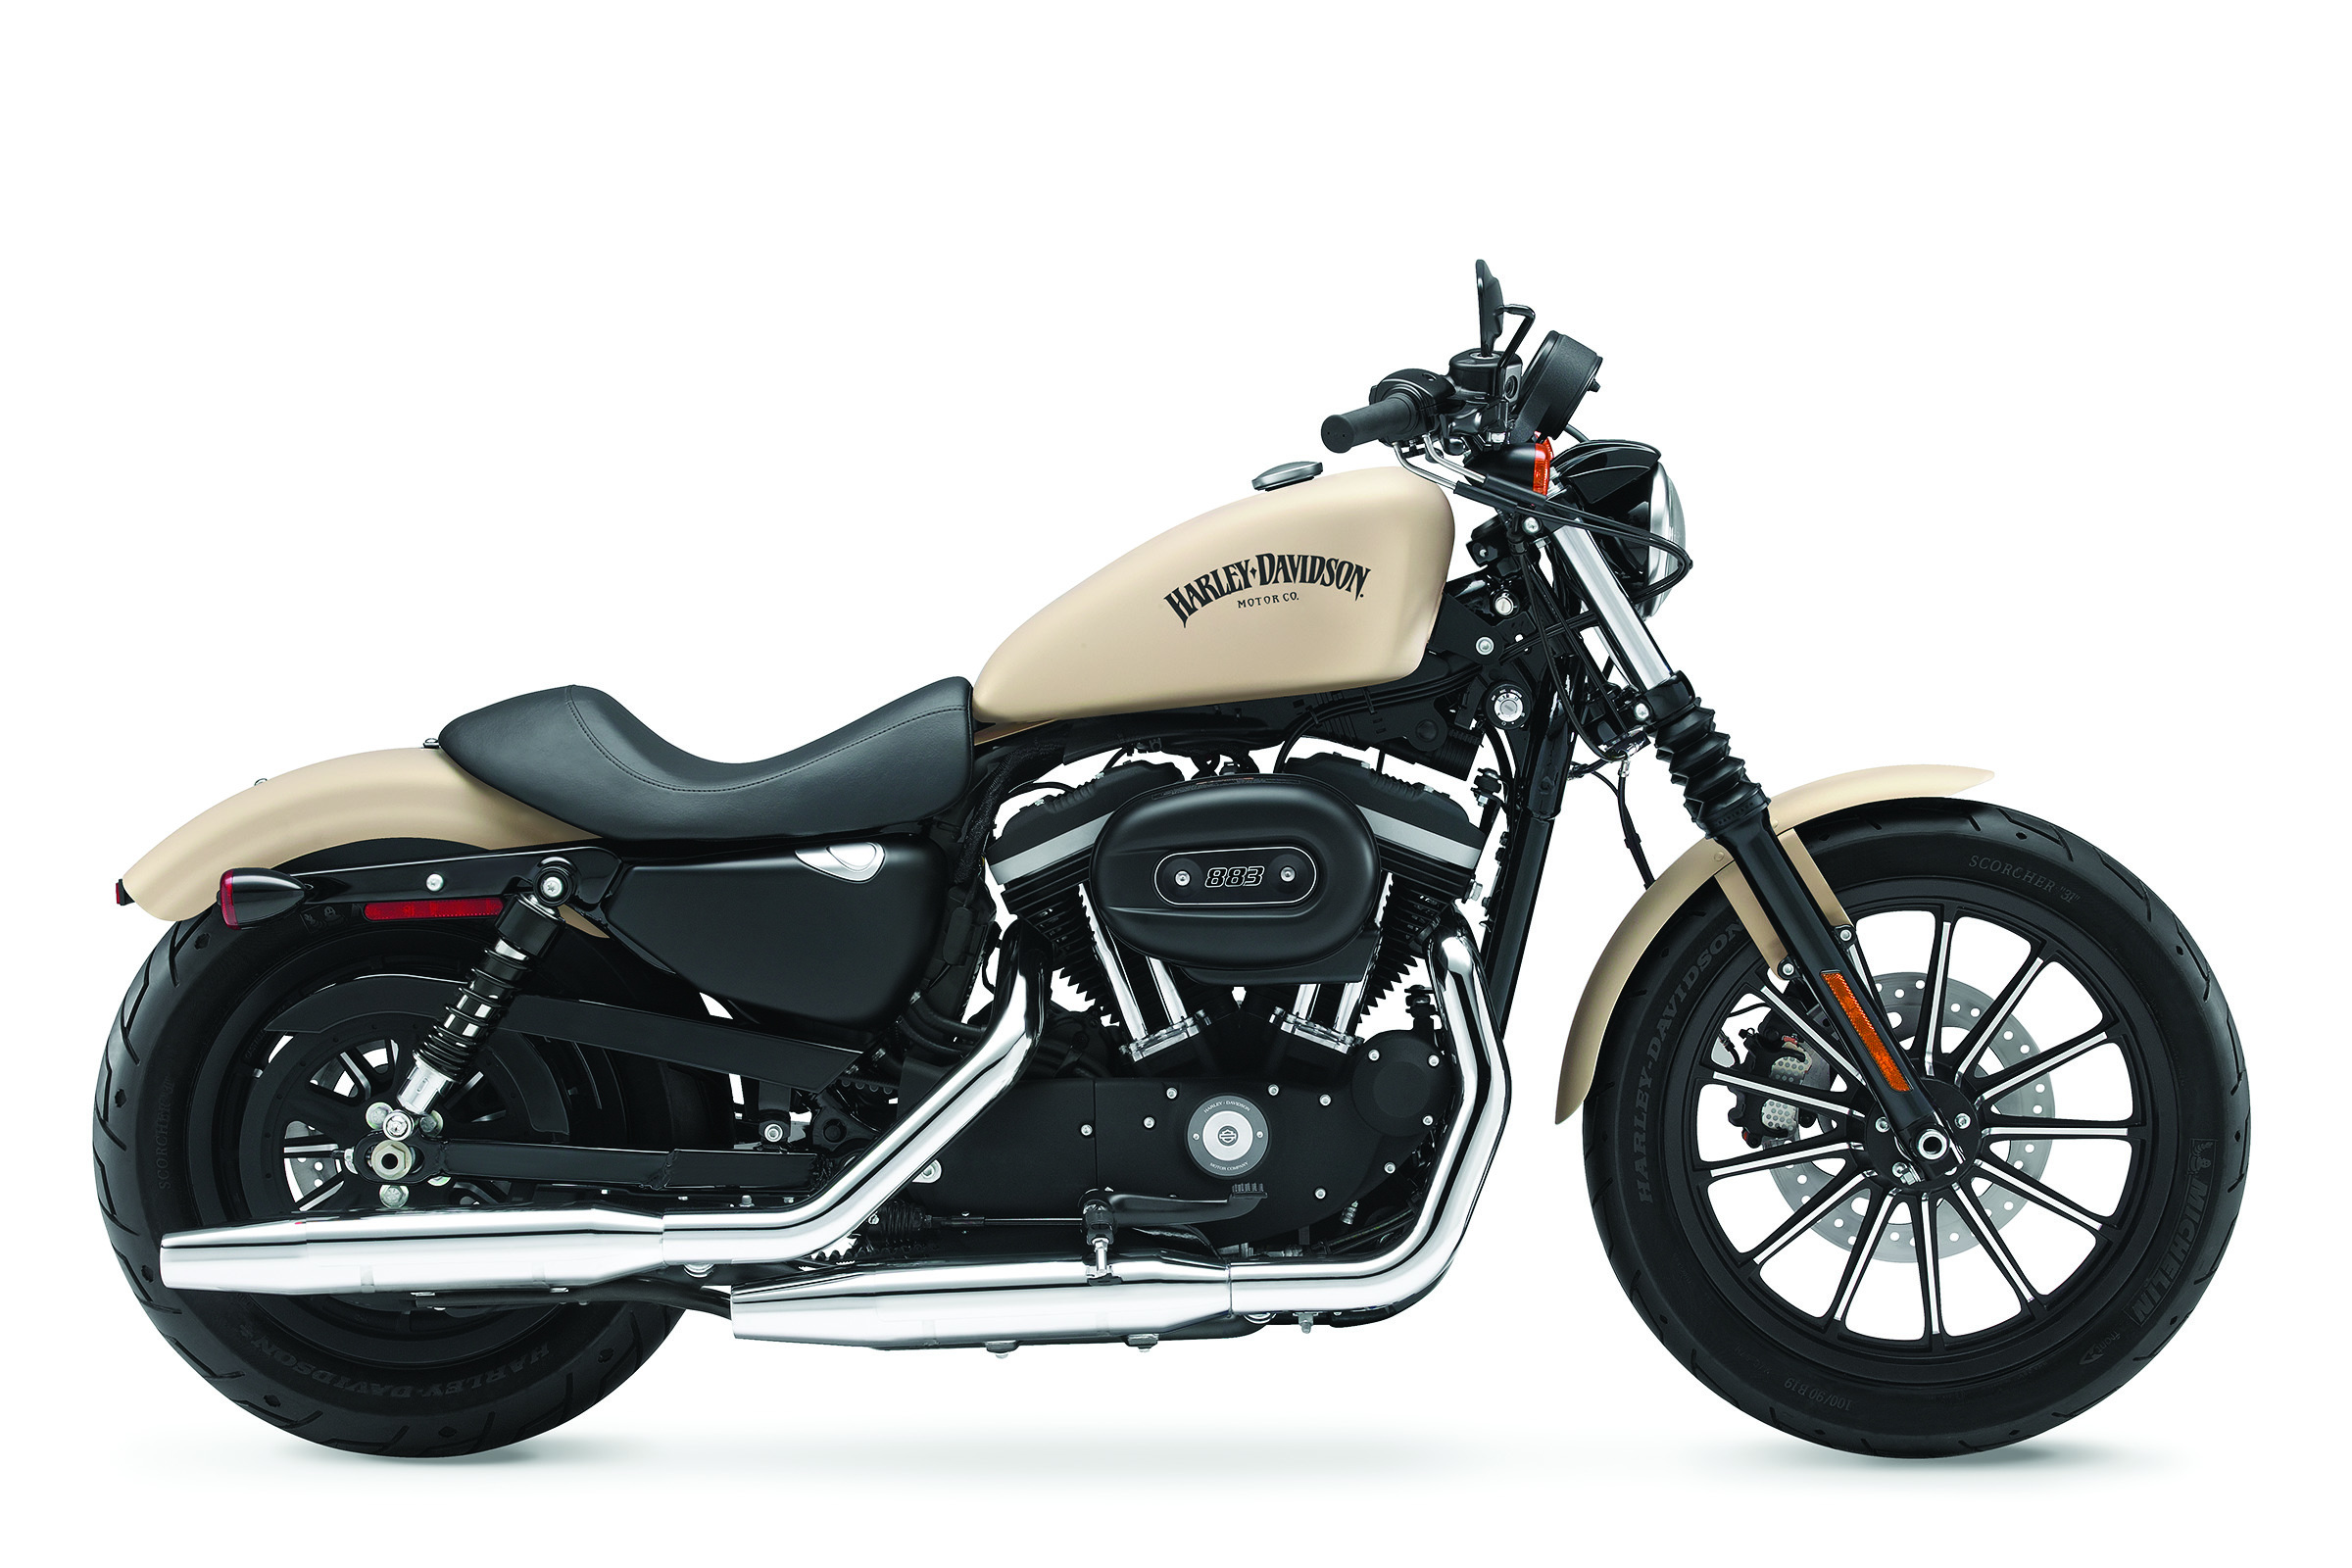 2016 Harley-Davidson Sportster Iron 883 review